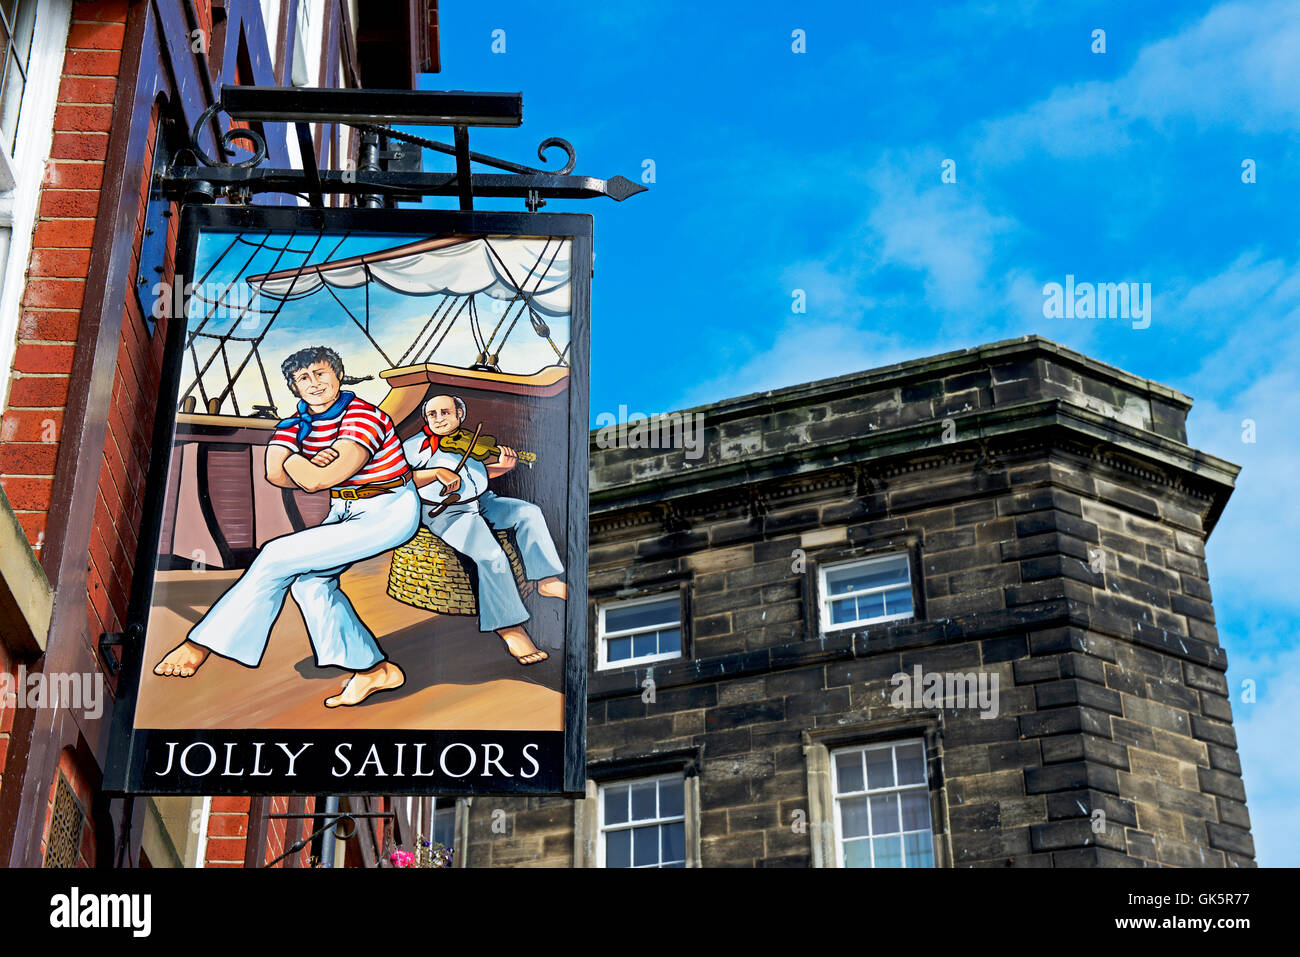 Señal para los marineros, pub Jolly St Ann's Staith, Whitby, North Yorkshire, Inglaterra Imagen De Stock